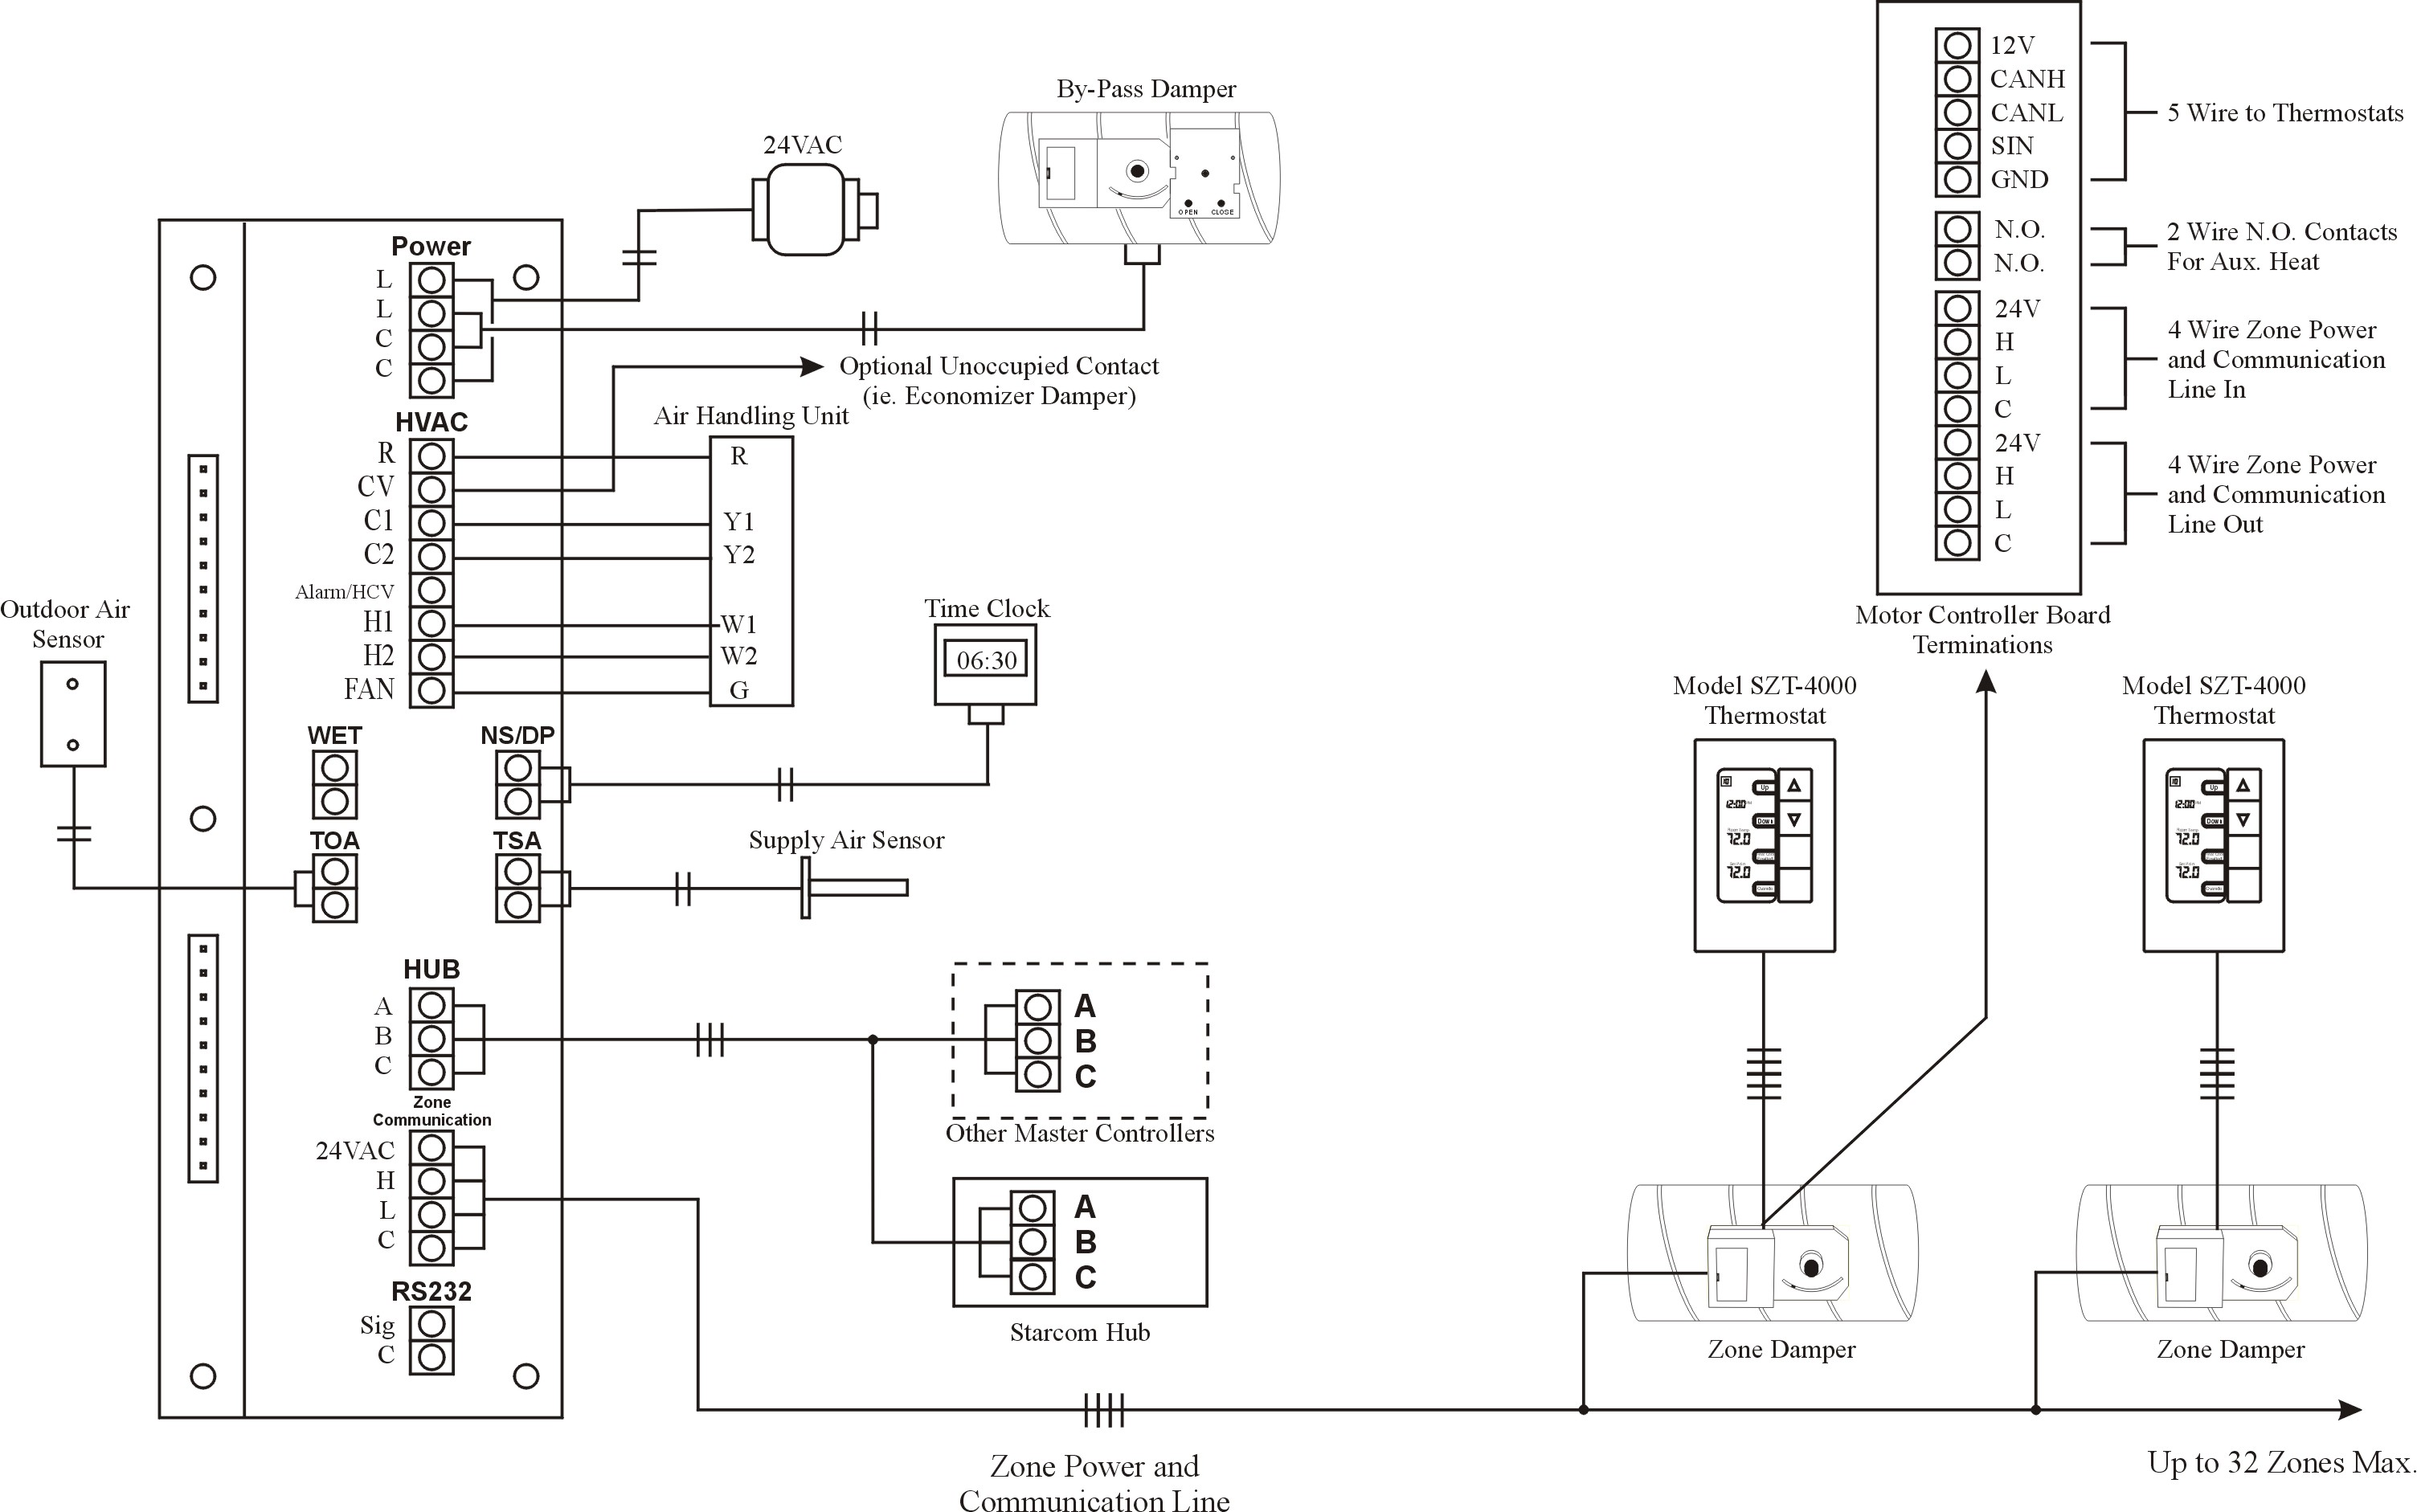 Tower Crane Electrical Diagram further Smoke And Carbon Monoxide Detector Requirements Chicago Condo in addition 6000 Apza also Fire Alarm System Block Diagram together with Fire Alarm System. on smoke alarm system wiring